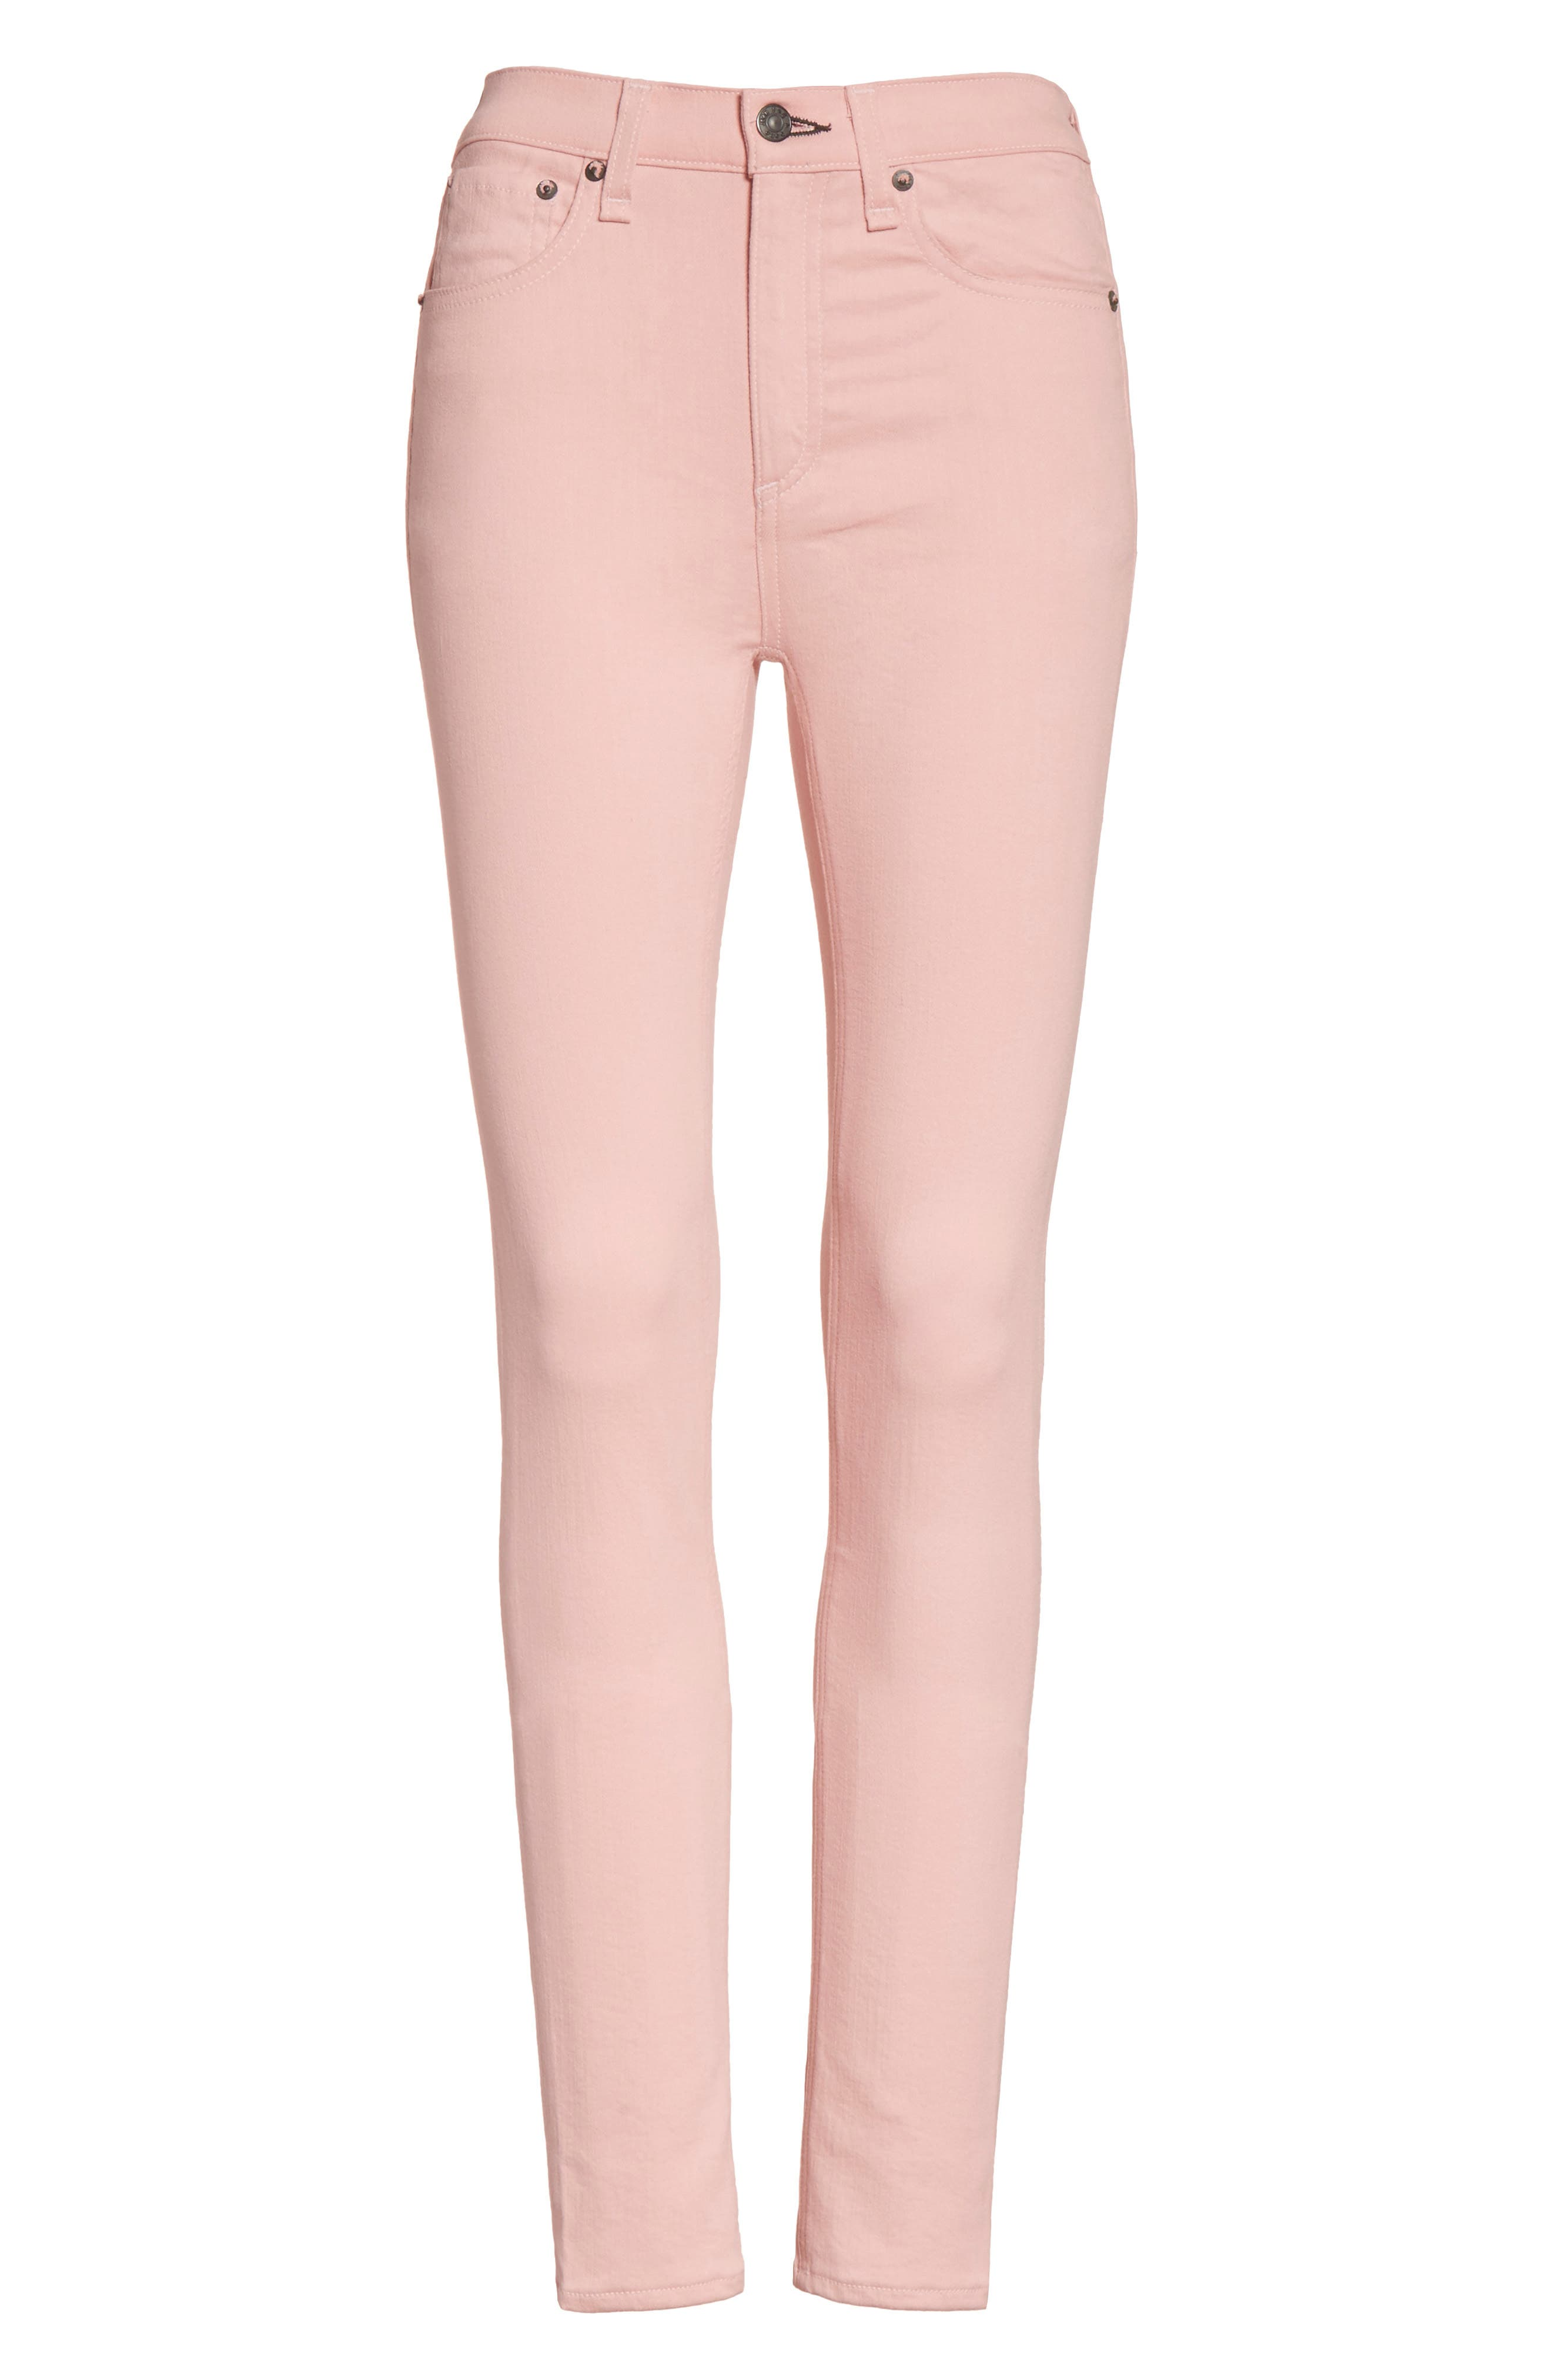 High Waist Skinny Jeans,                             Alternate thumbnail 7, color,                             Blush Twill